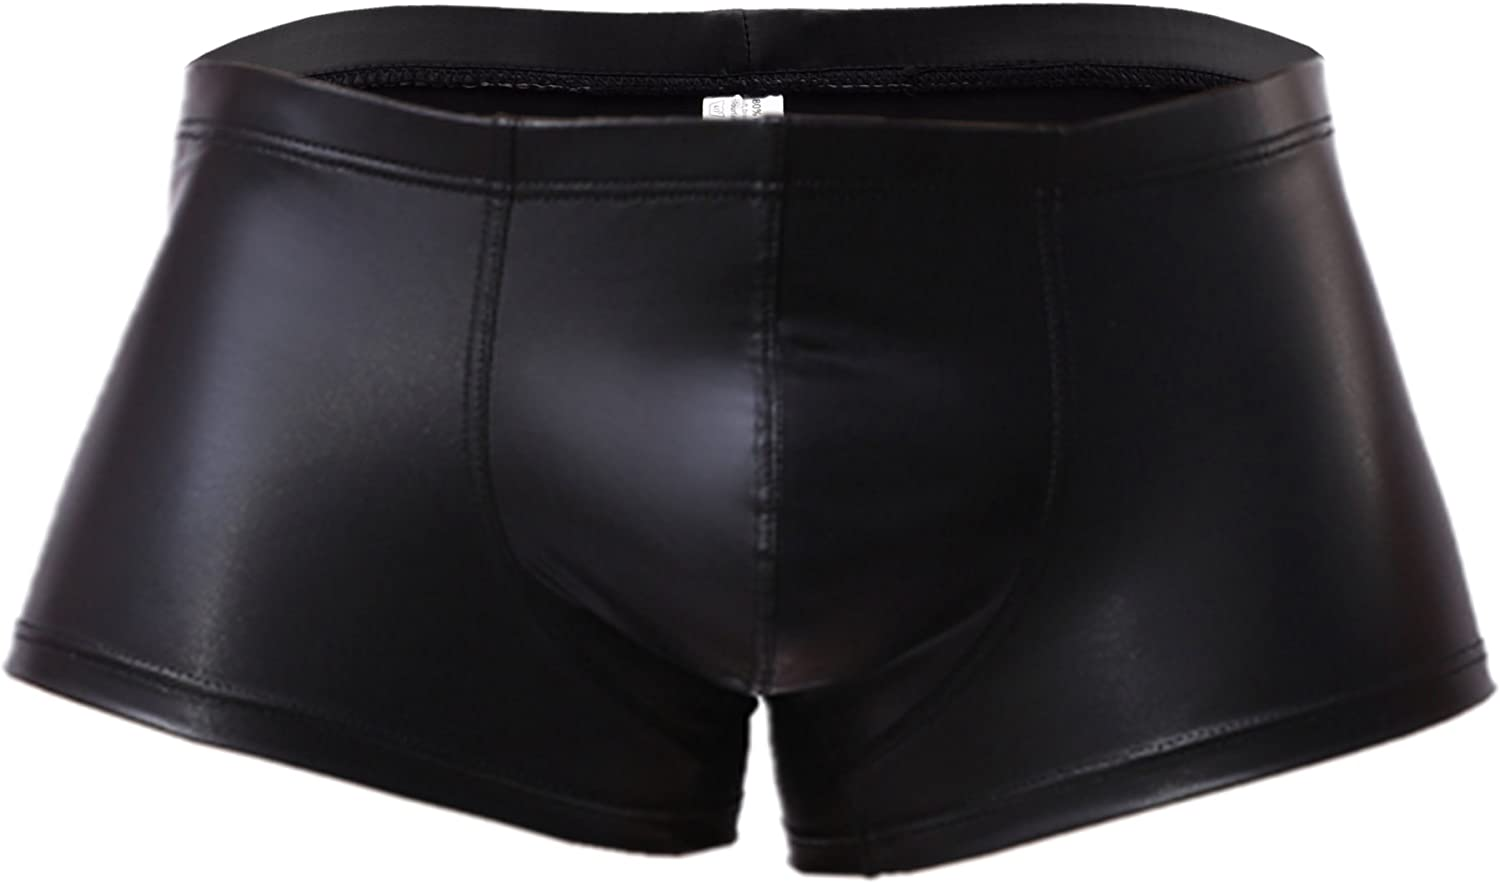 Underwear Boxer Briefs Shorts Knickers Underpants 34 Men Faux Leather Wet